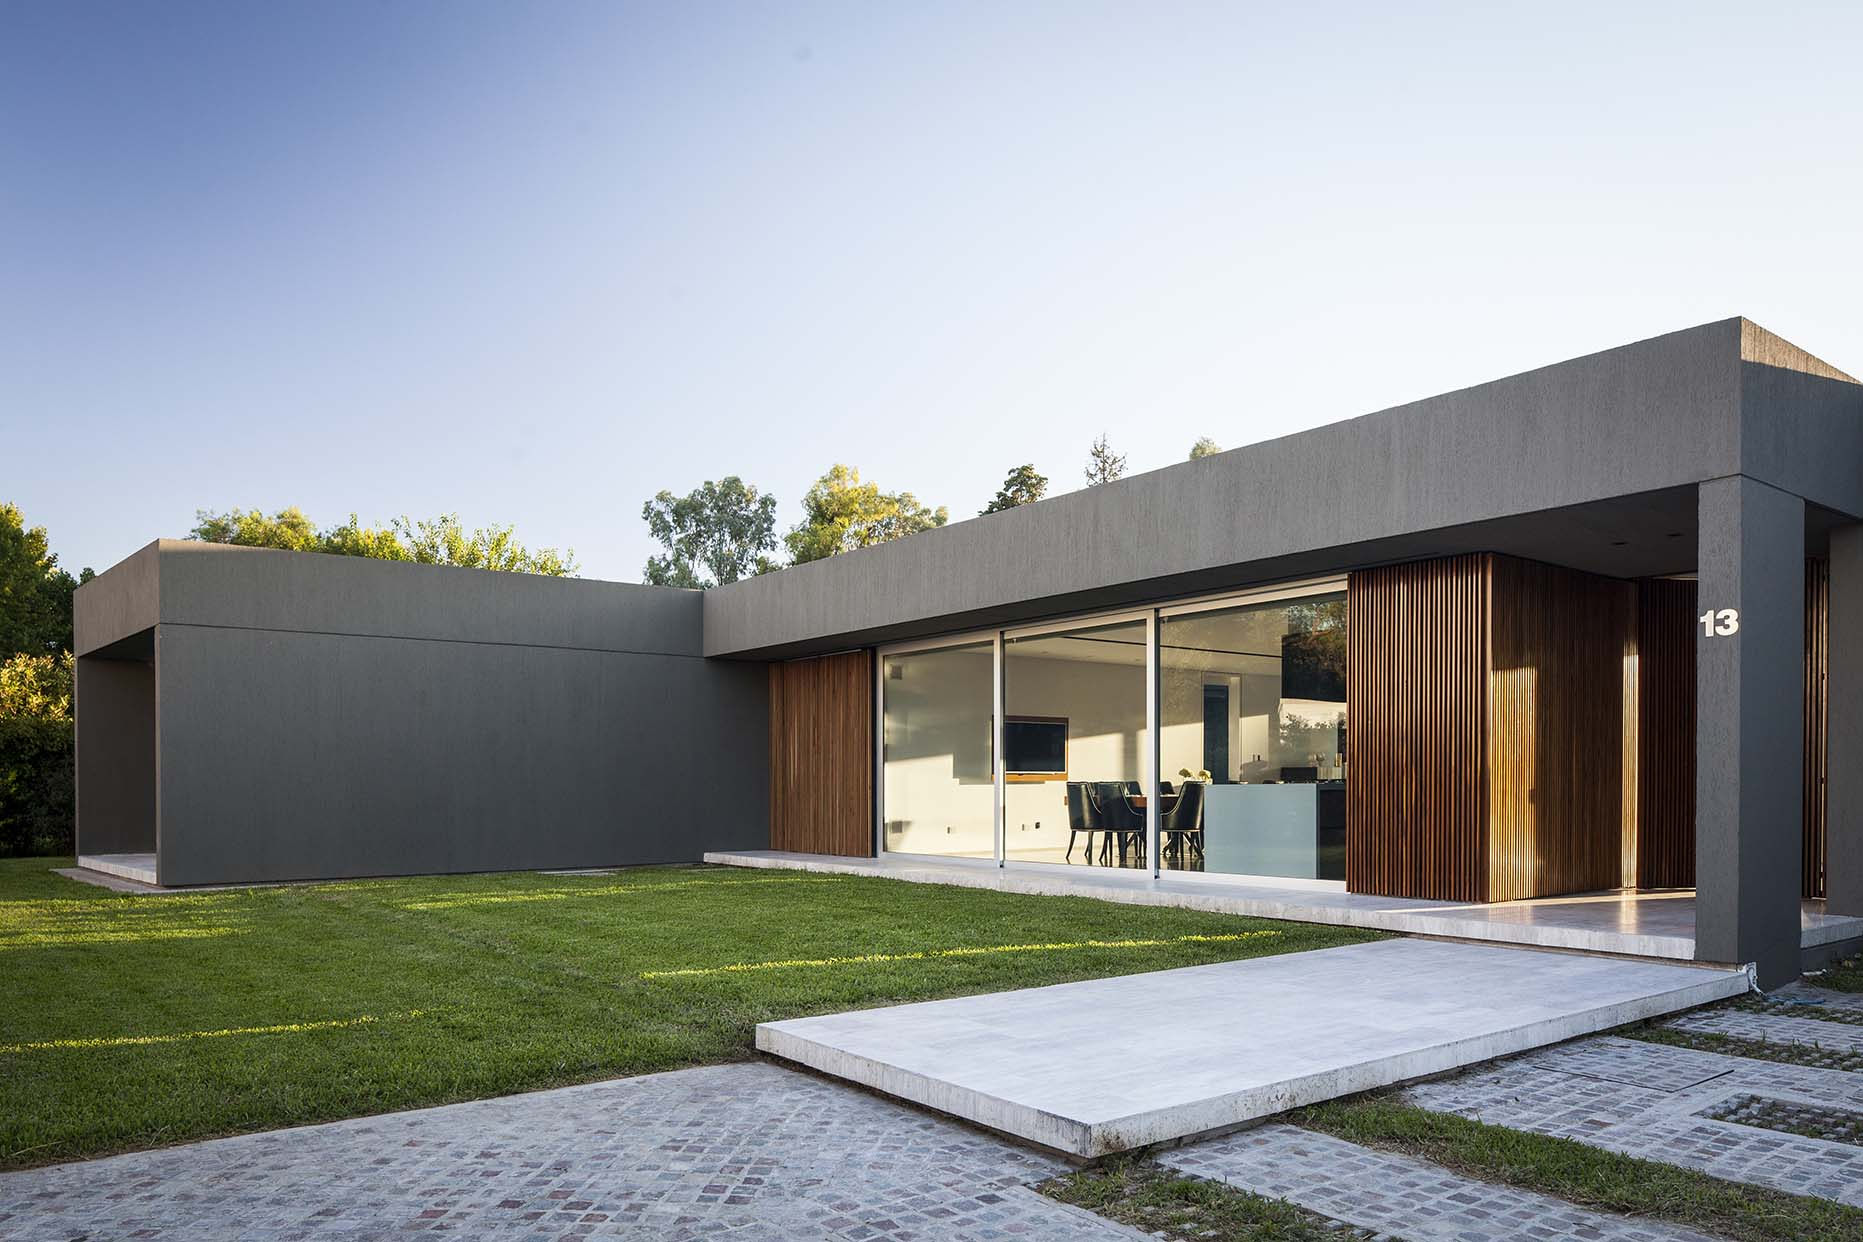 Facade of the House PR in Buenos Aires clad in wood, glass and concrete